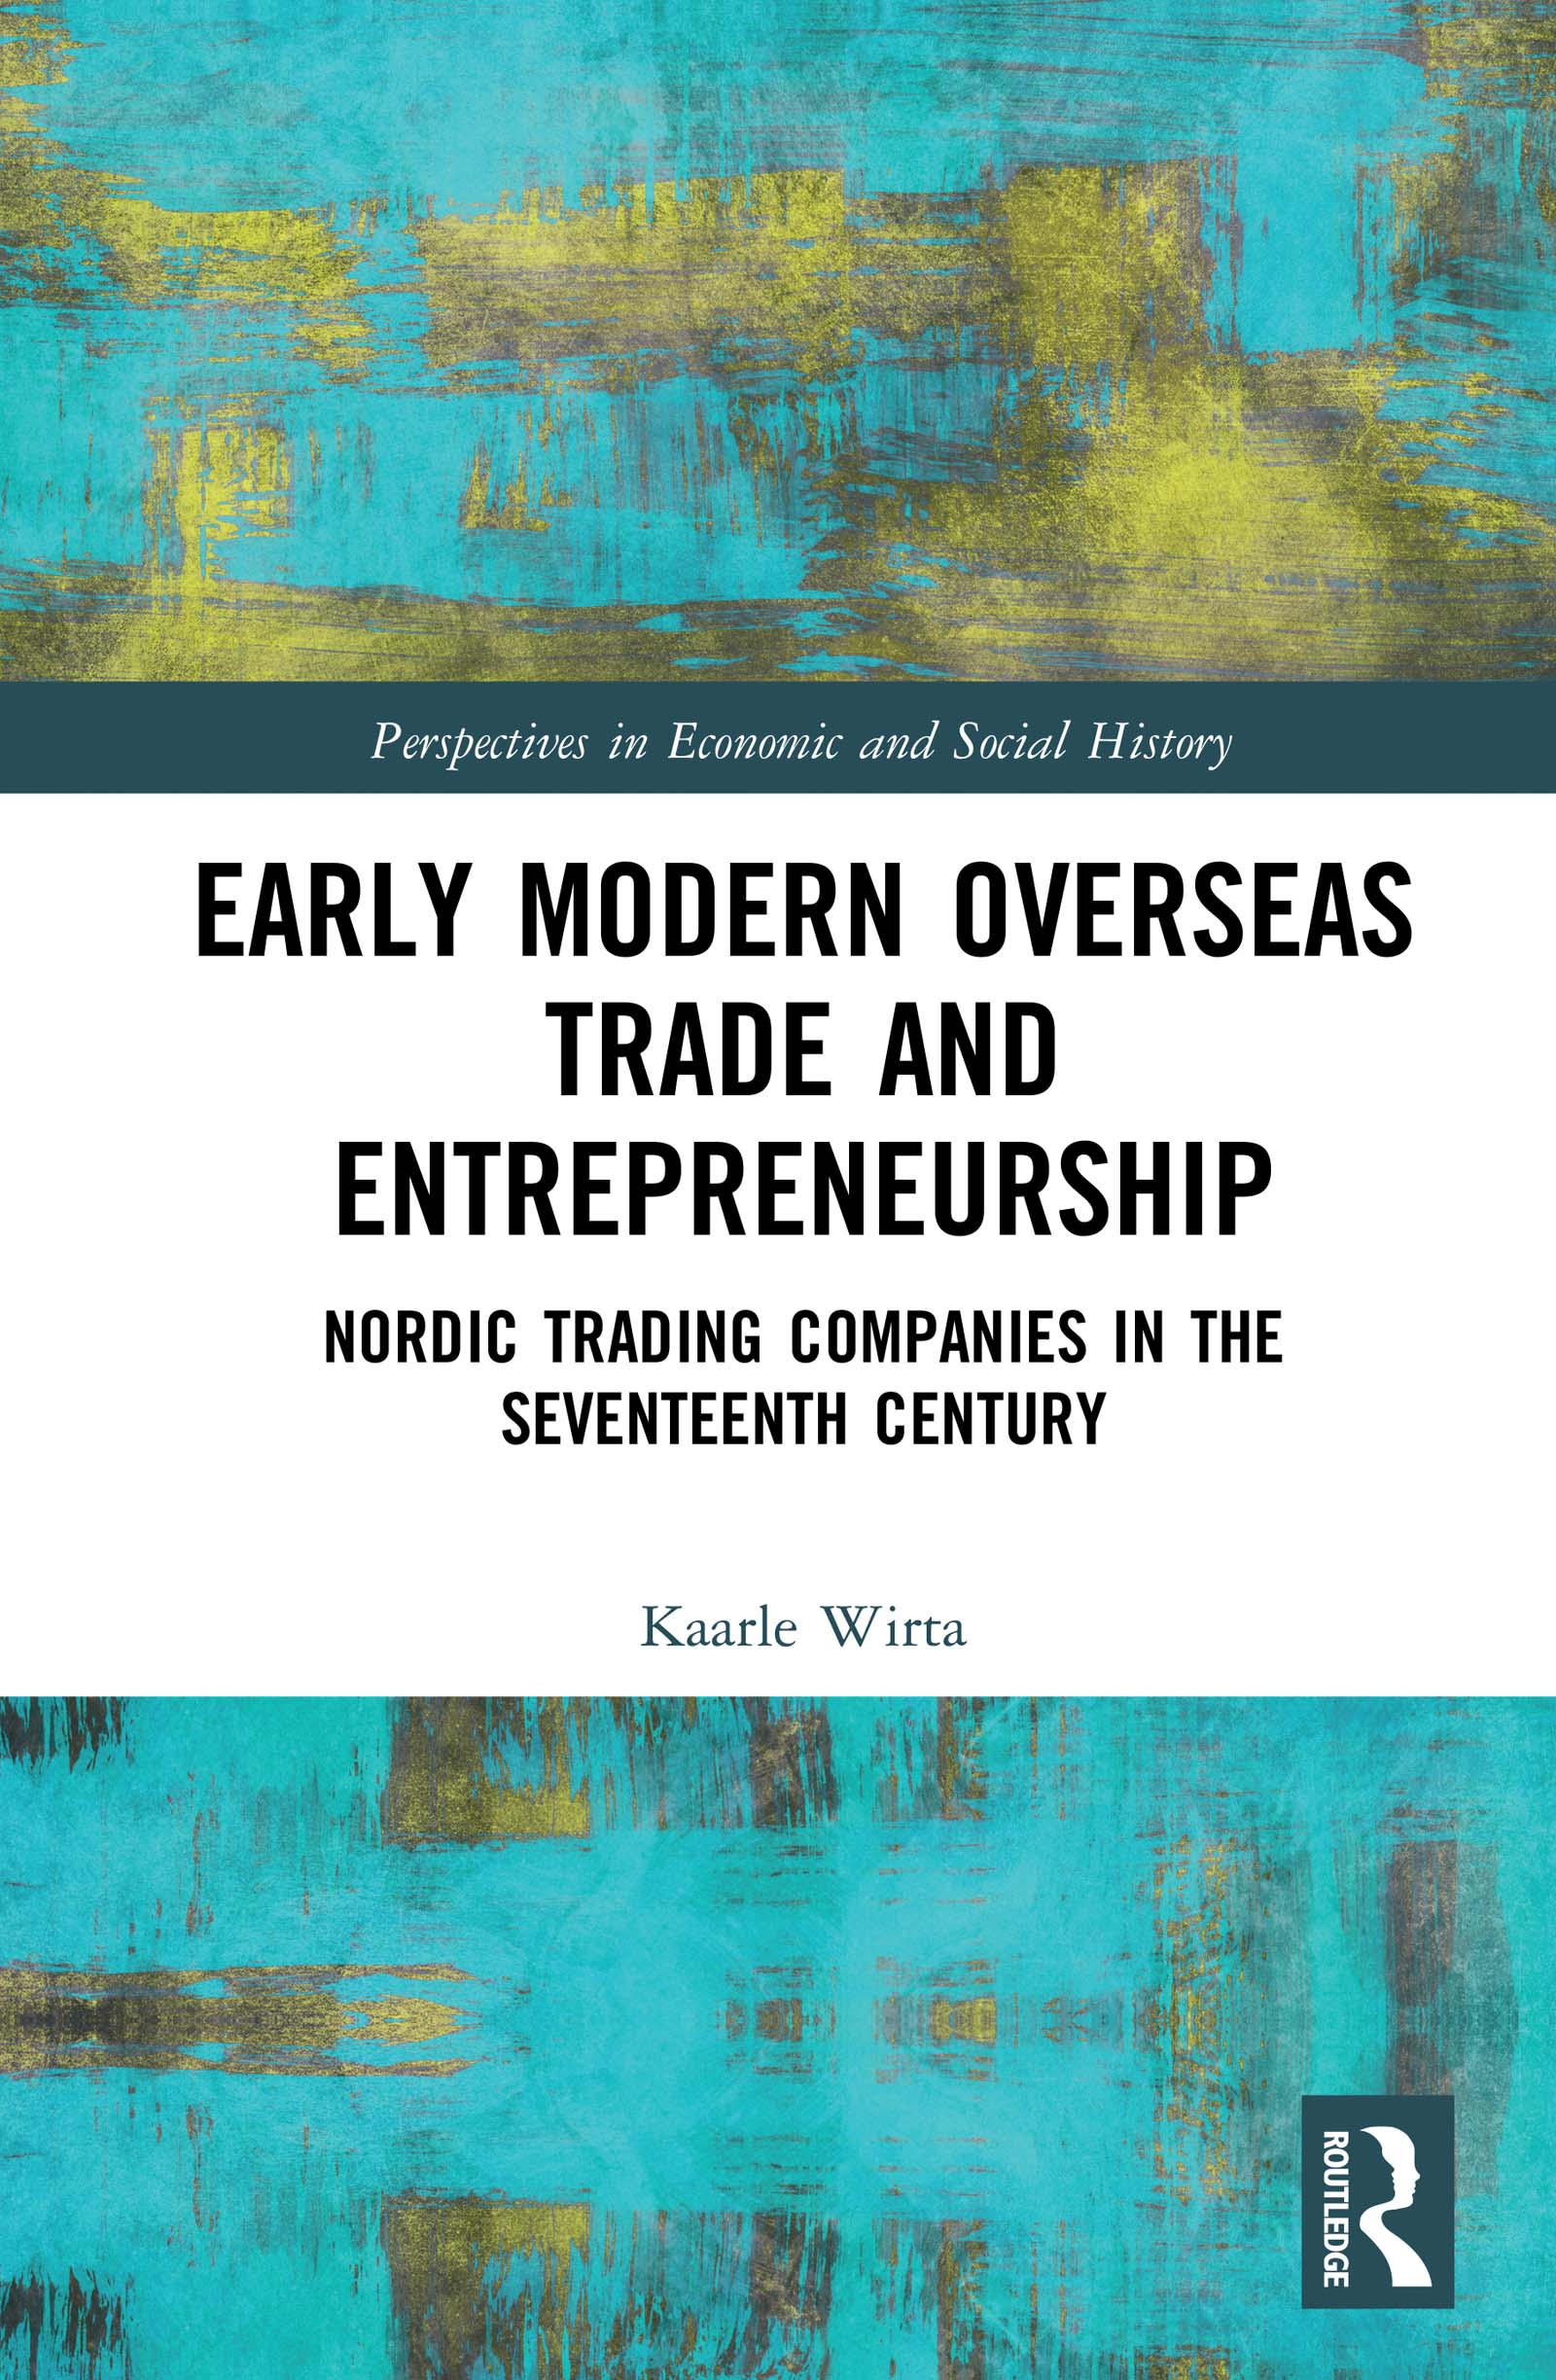 Early Modern Overseas Trade and Entrepreneurship